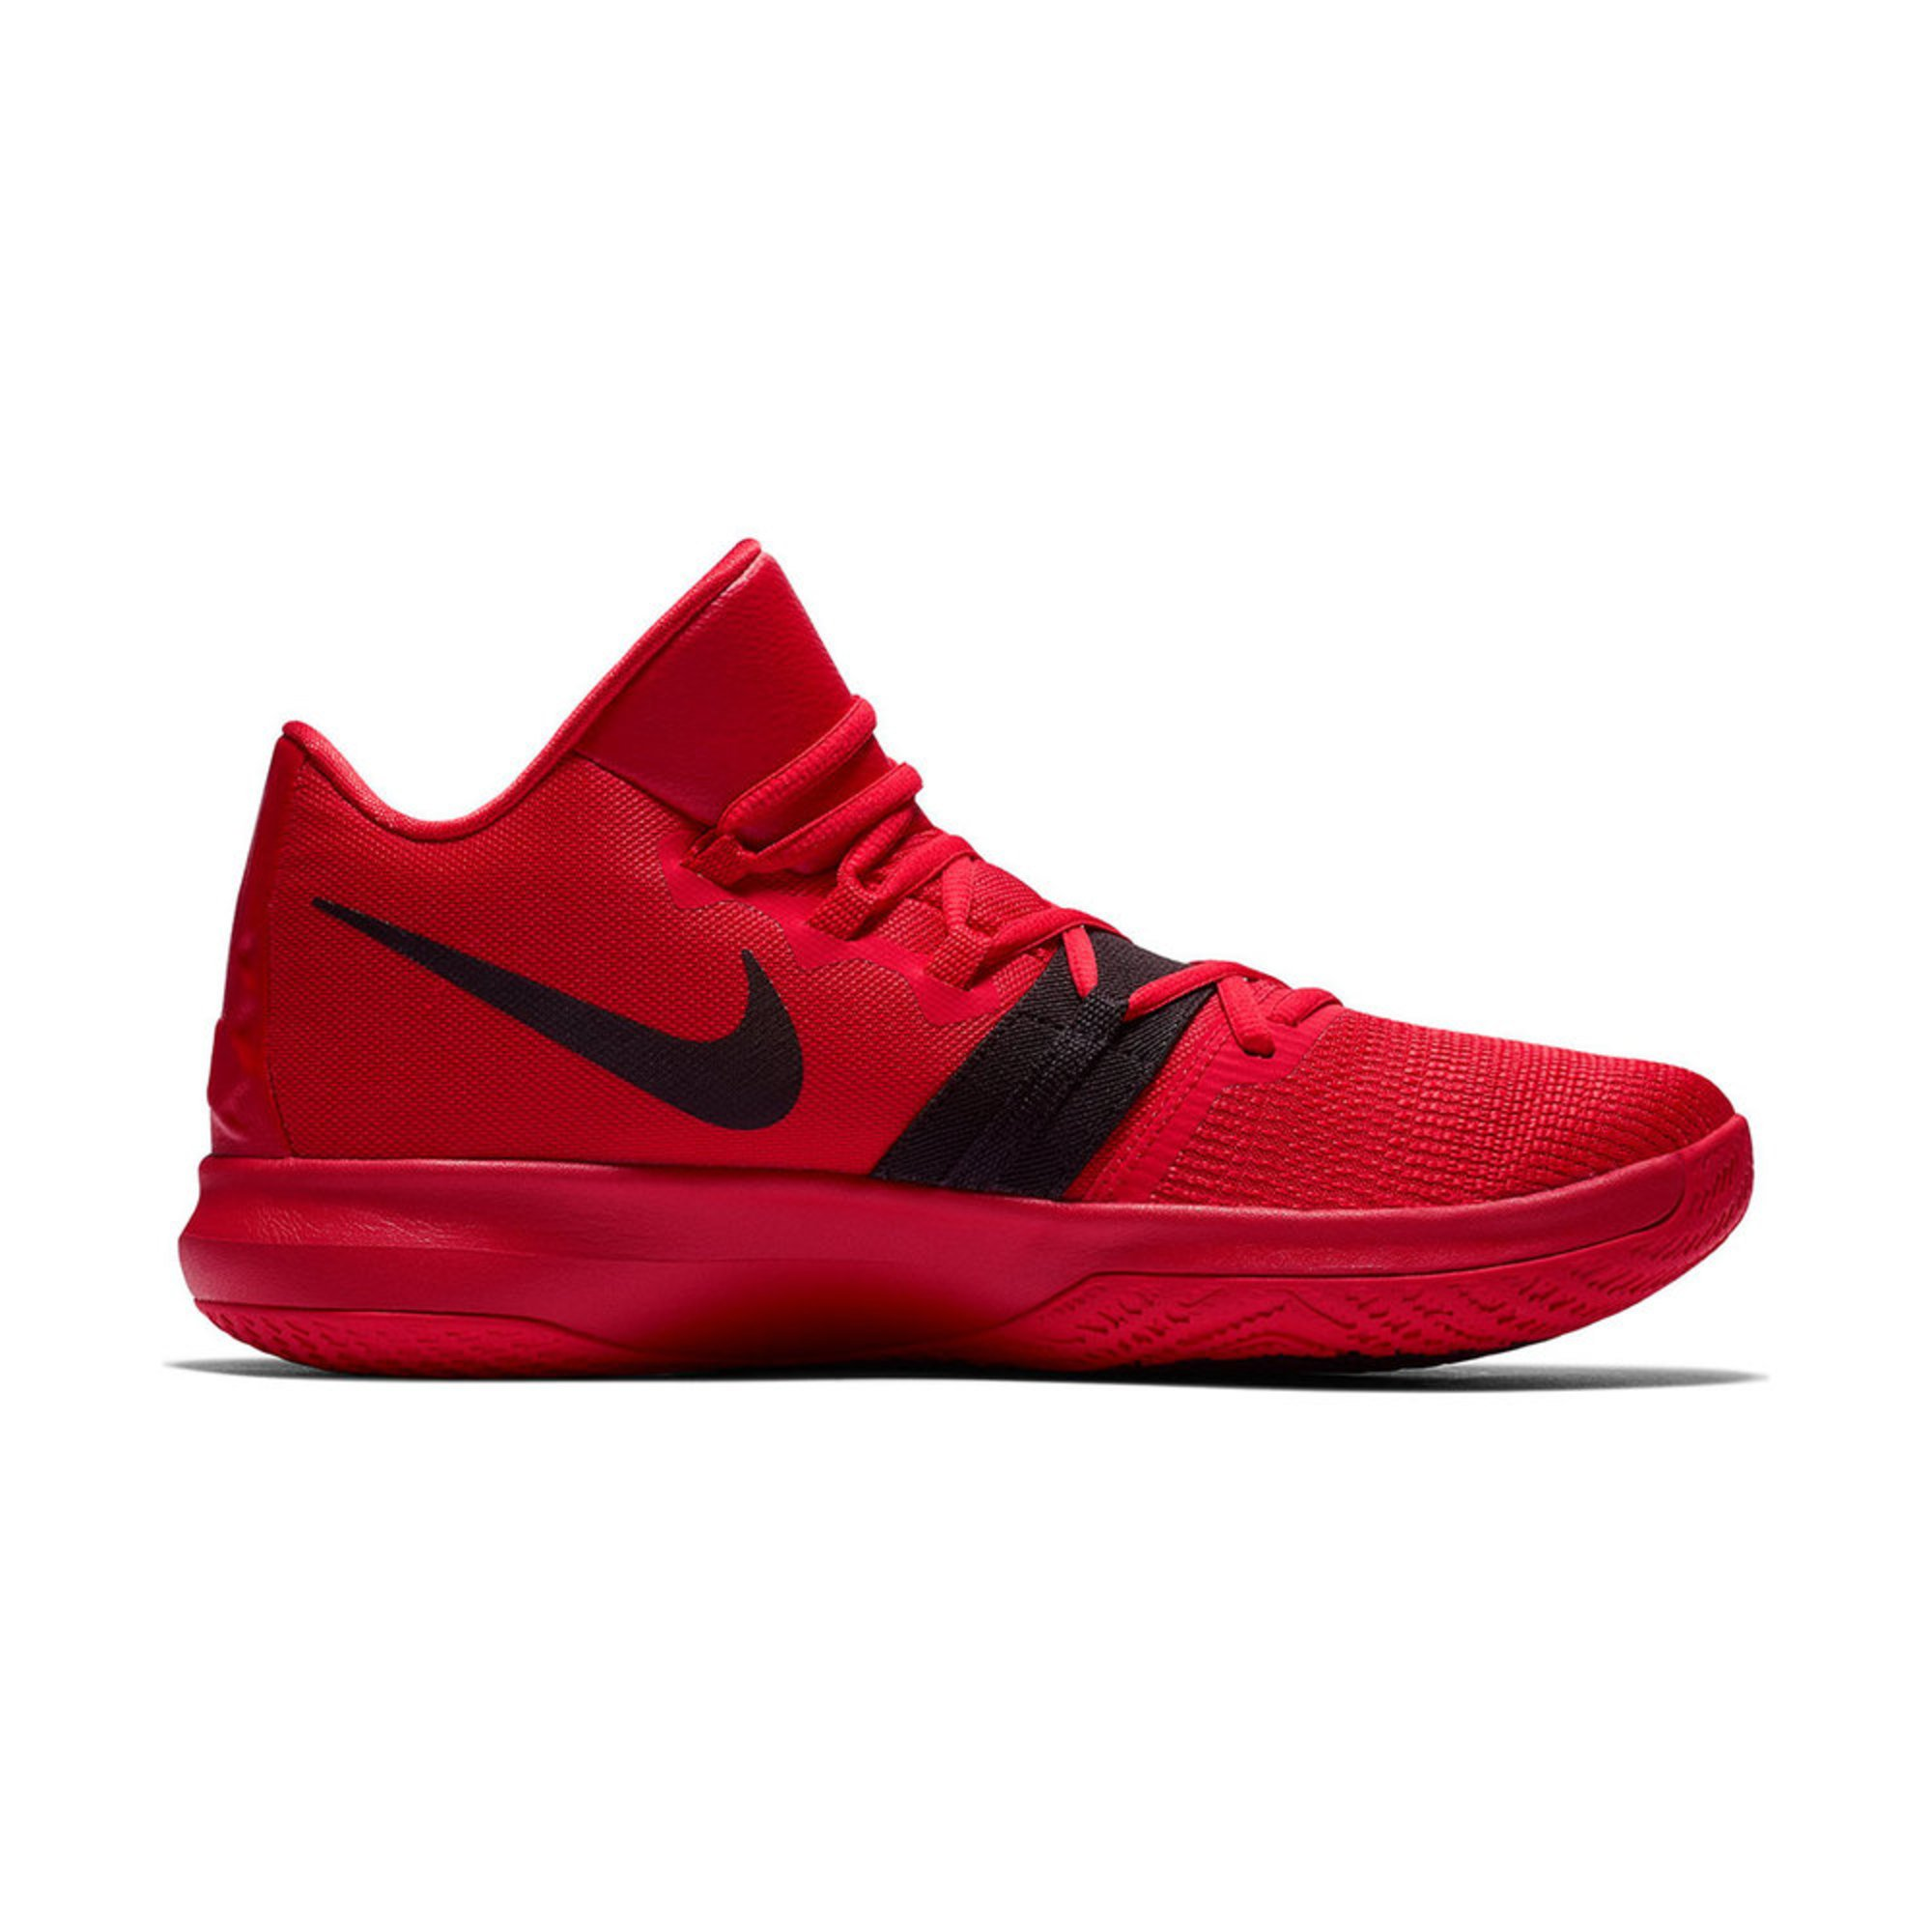 hot sales bbd4f cbb11 Nike. Nike Mens Kyrie Flytrap Basketball Shoe. Product Rating